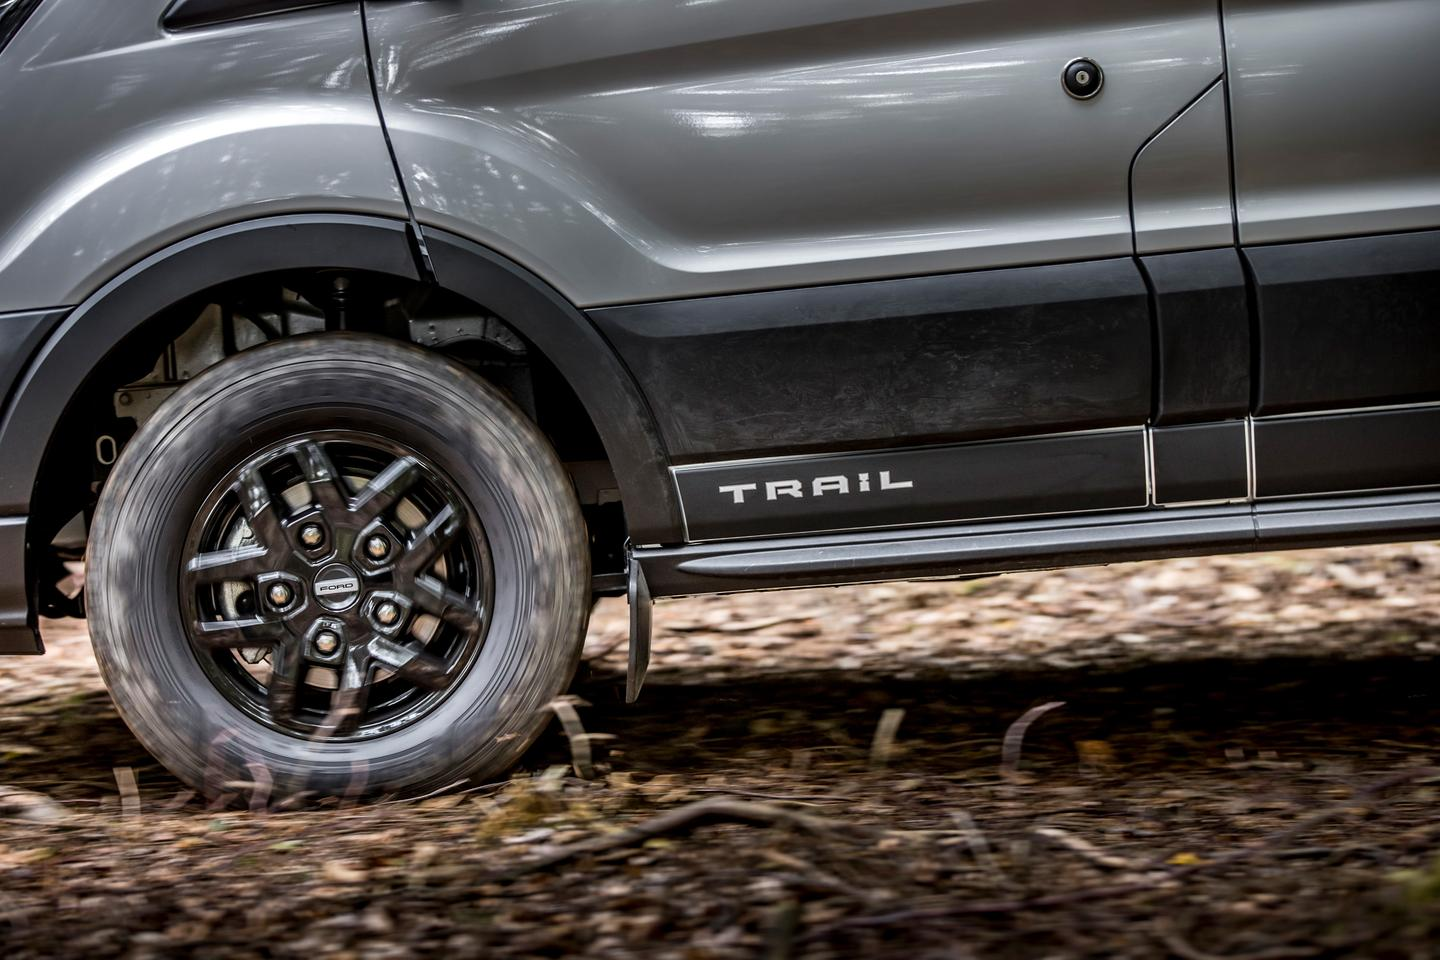 """The """"Trail"""" package brings a limited-slip front differential, 16-in black alloy wheels, FORD grille, and other interior and exterior upgrades"""